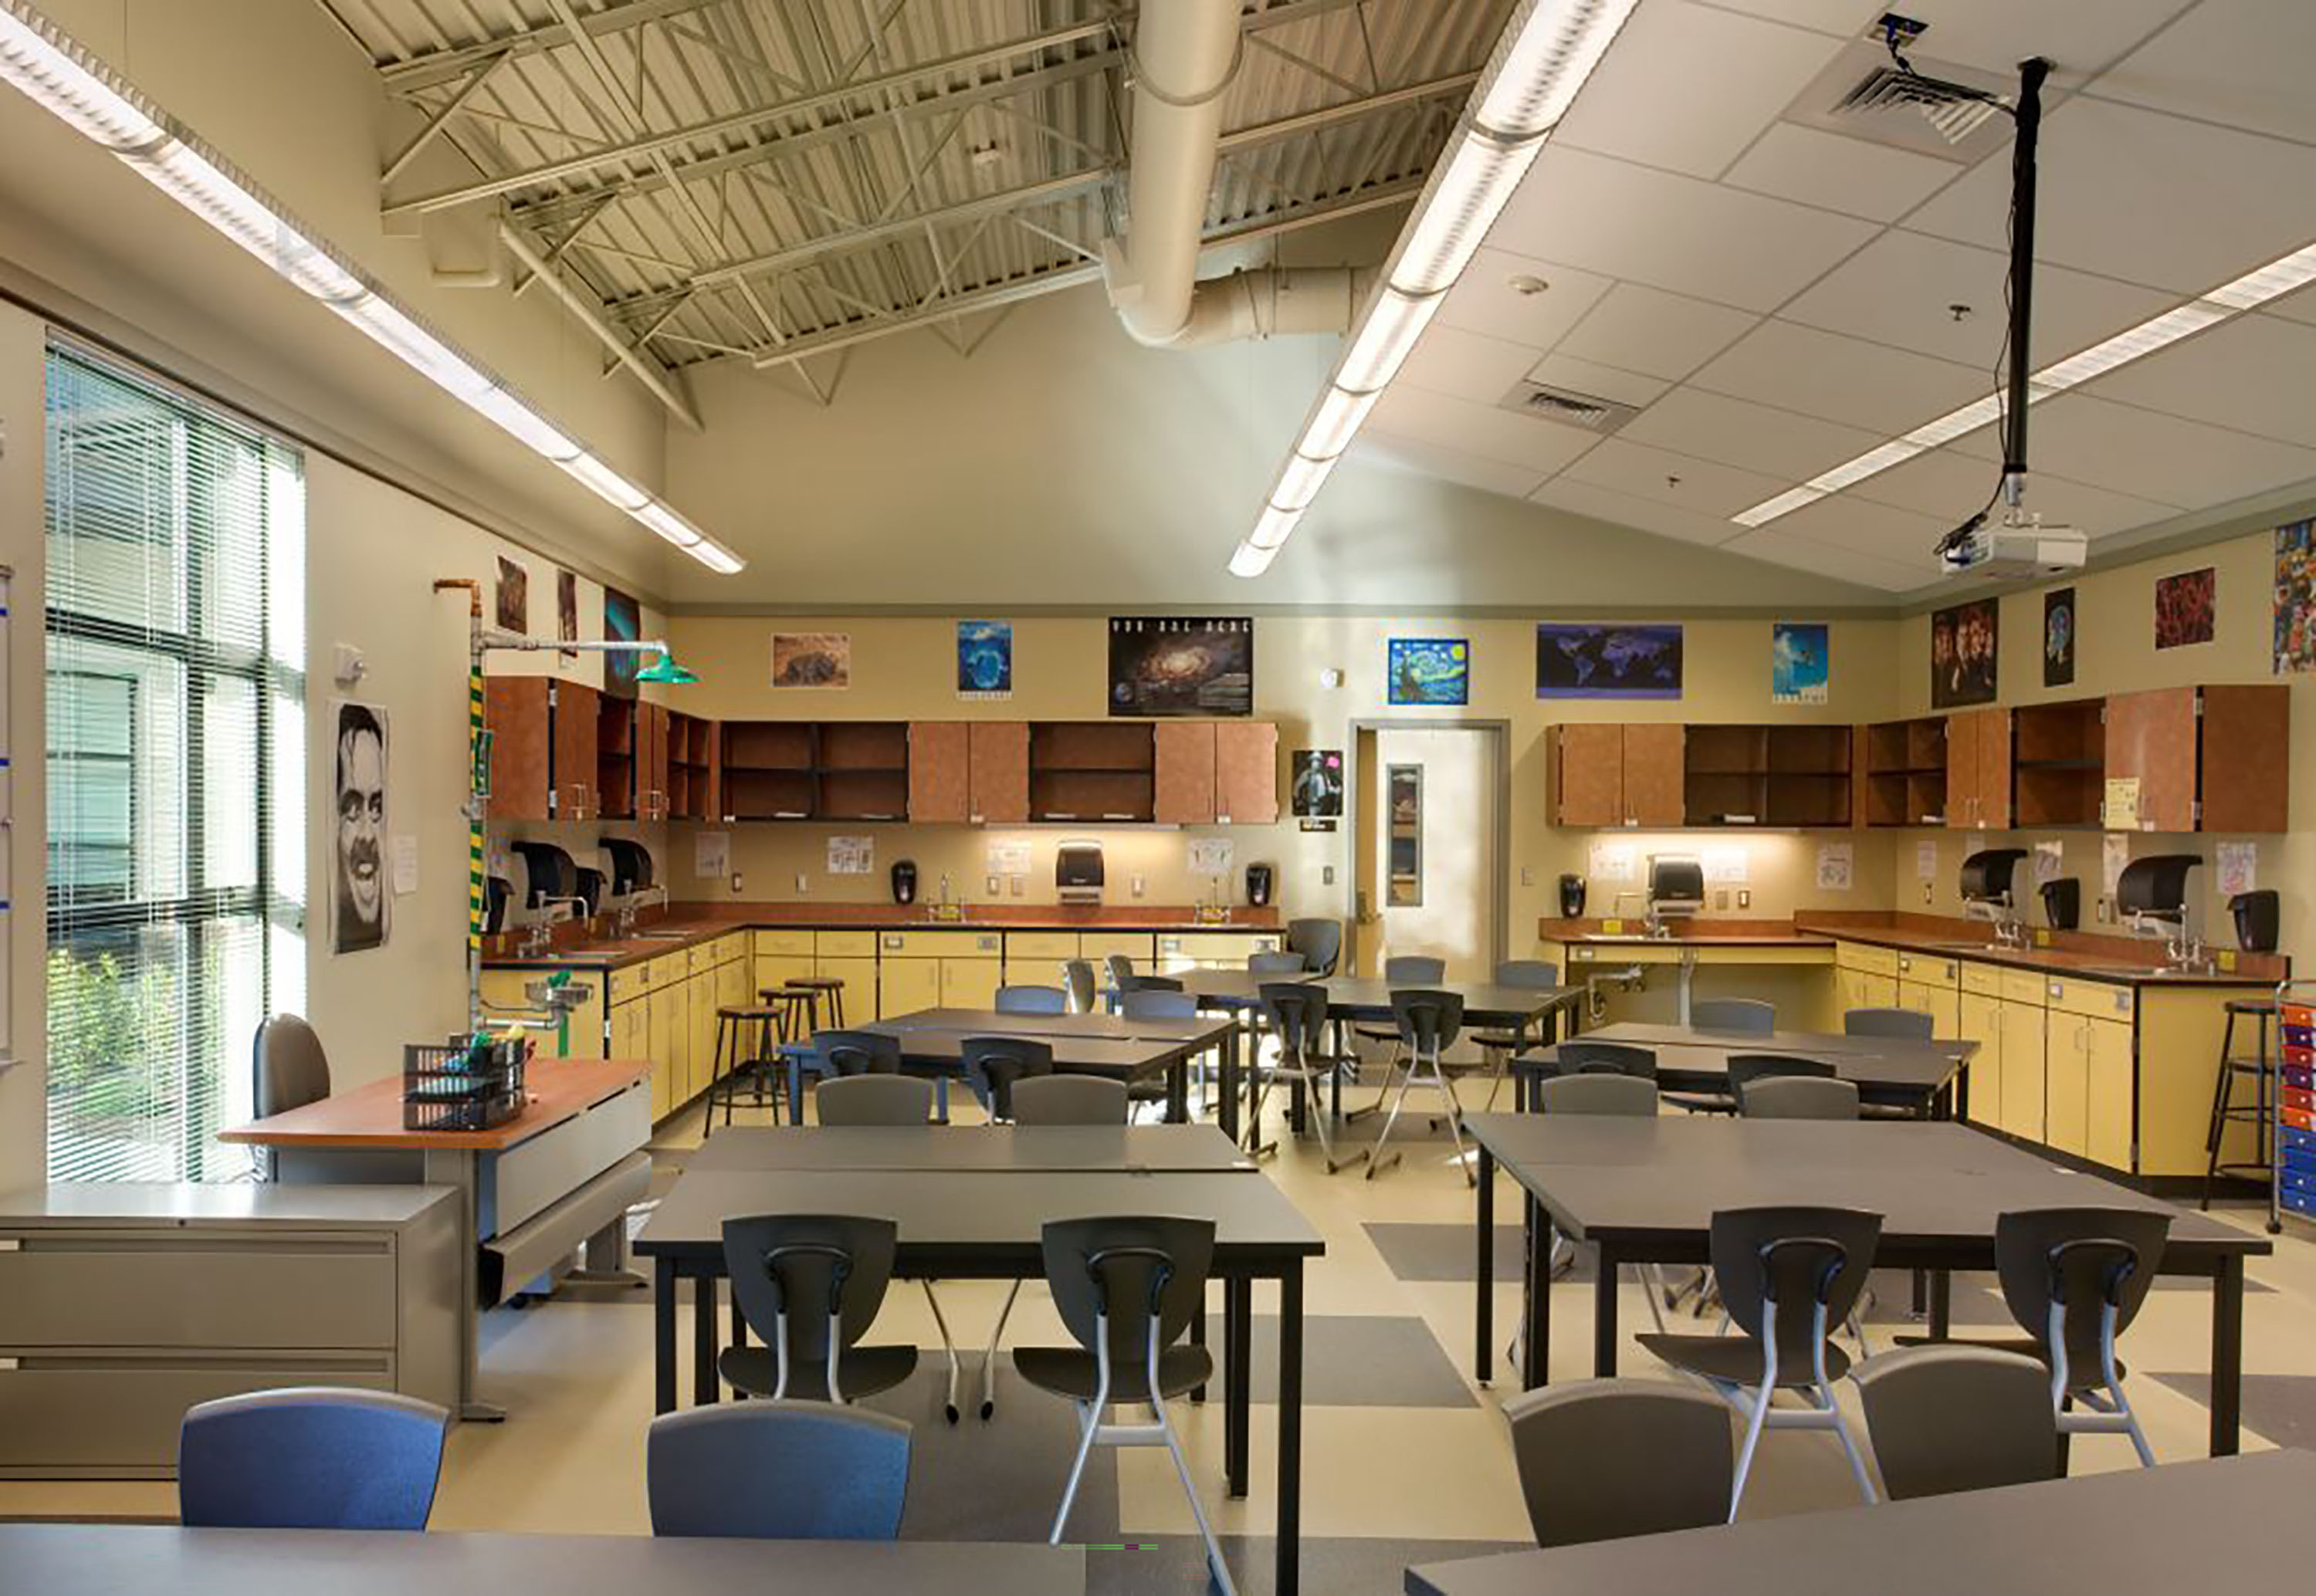 Wide photo of a classroom ready for students.